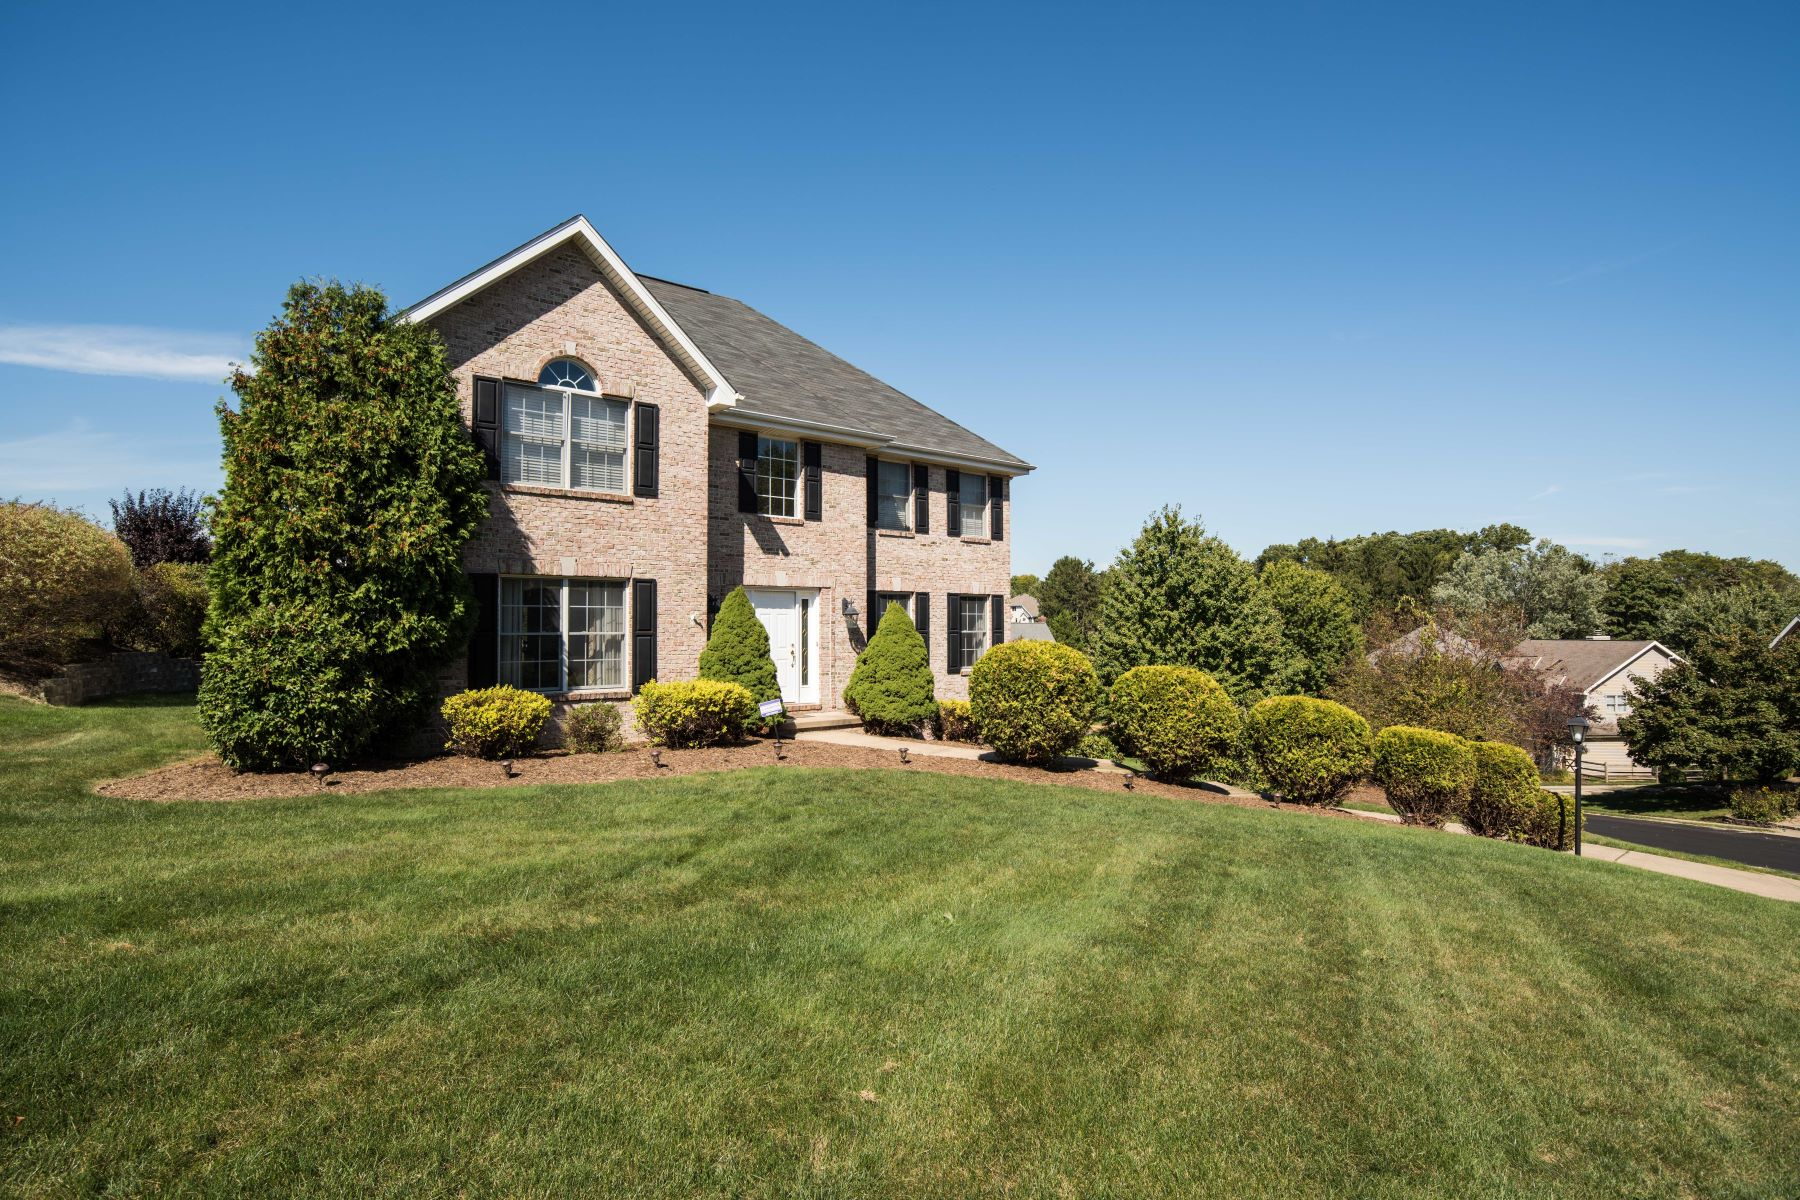 Single Family Homes for Sale at Stately Brick Home in Award Winning North Allegheny School District 1379 Royal Oak Drive, Wexford, Pennsylvania 15090 United States